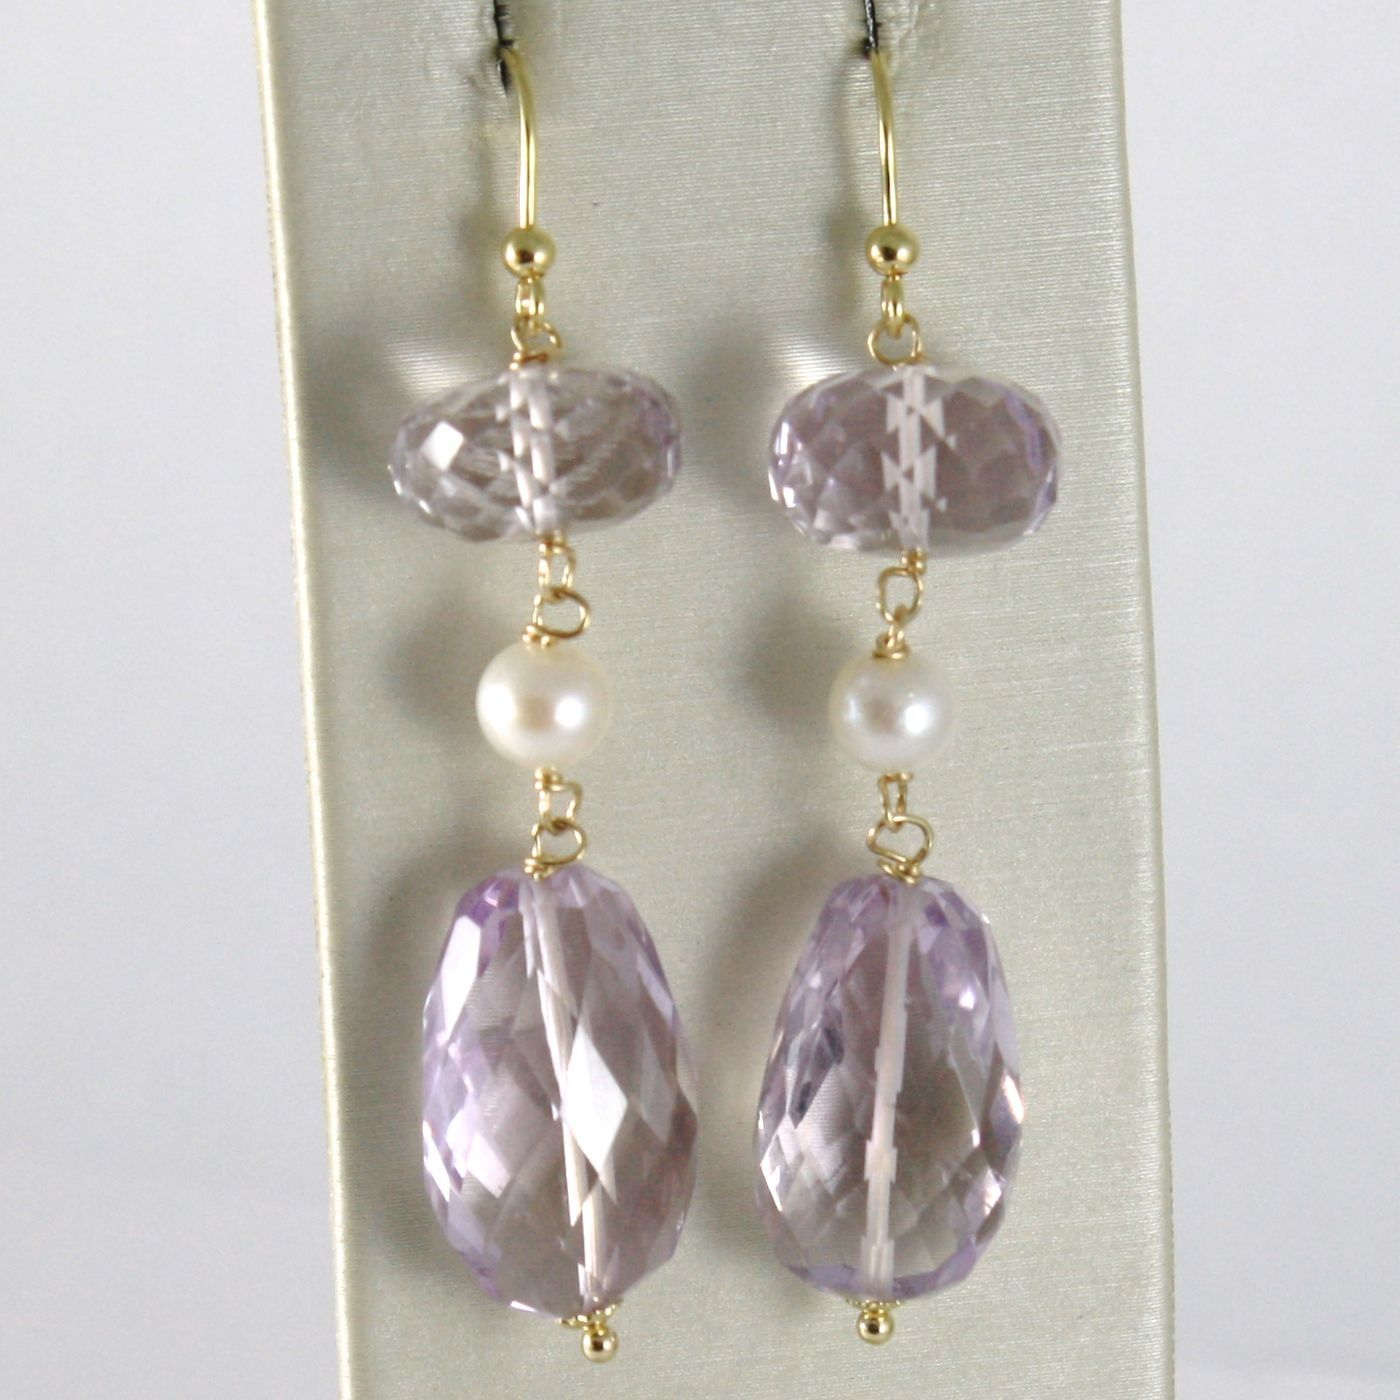 YELLOW GOLD EARRINGS 750 18K HANGING 5 CM, AMETHYST CUT CUSHION AND PEARLS